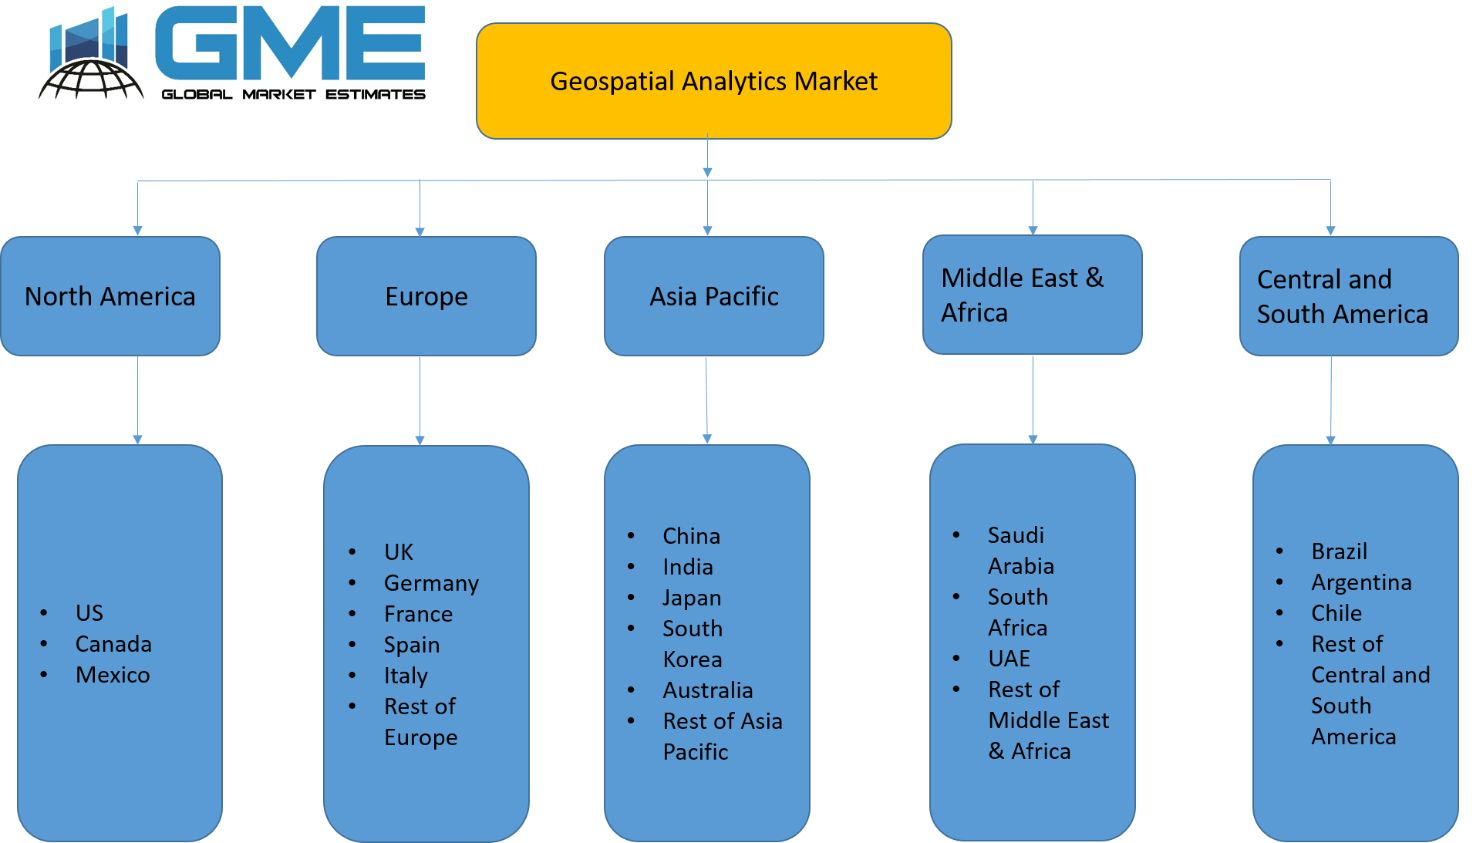 Geospatial Analytics Market - Regional Analysis